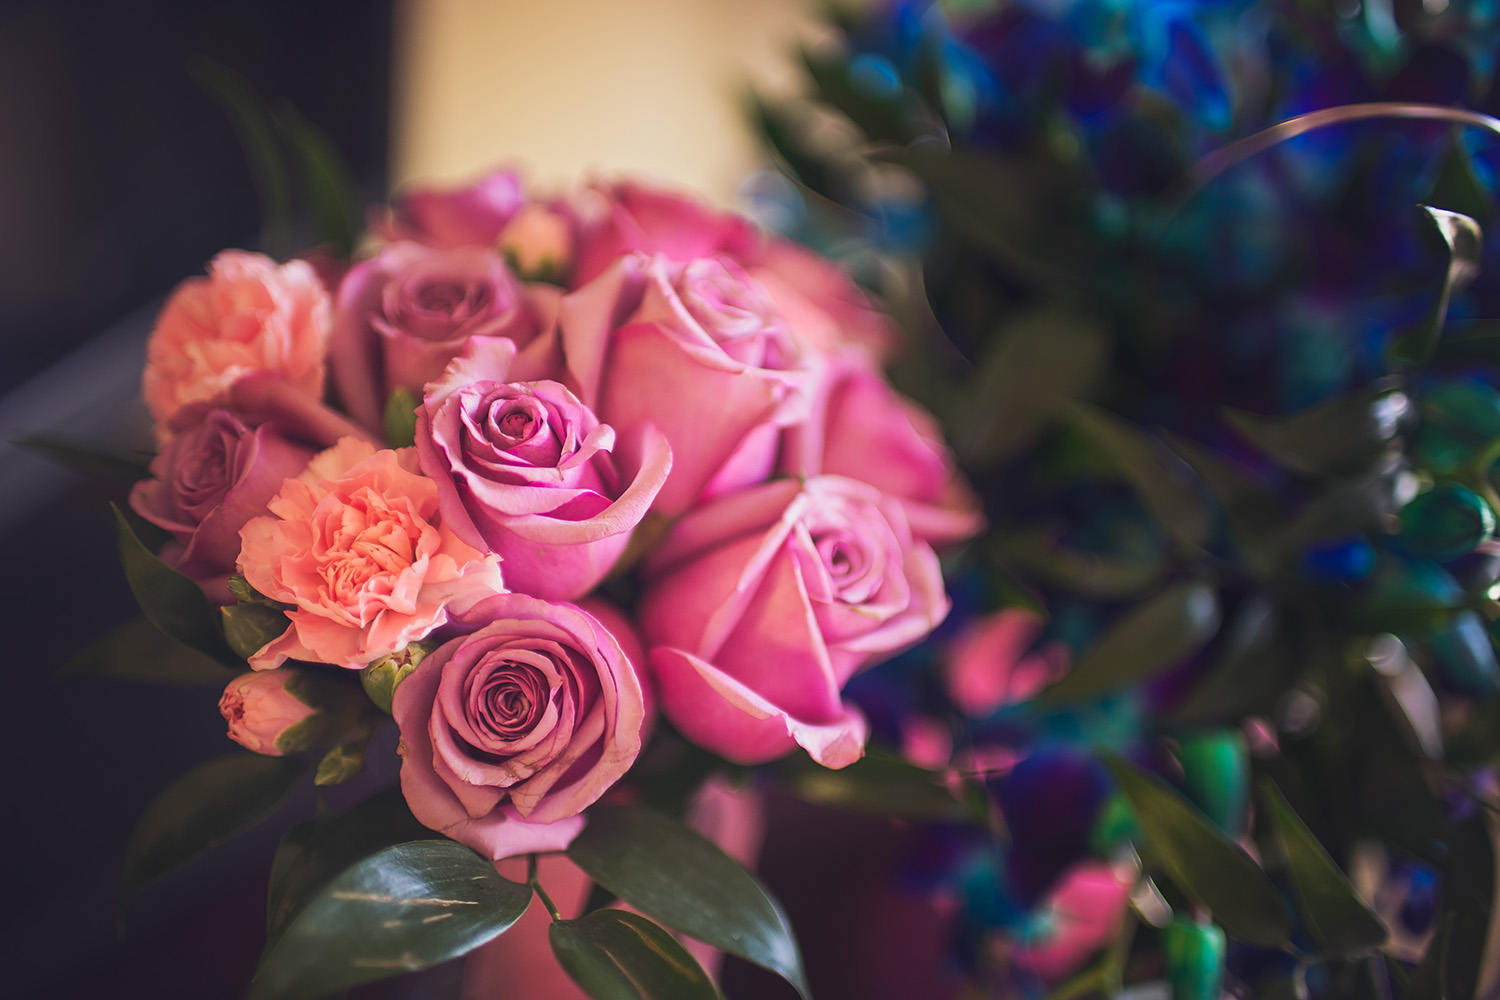 The Matron of Honor carried beautiful pink roses from Flowerama of Springfield.